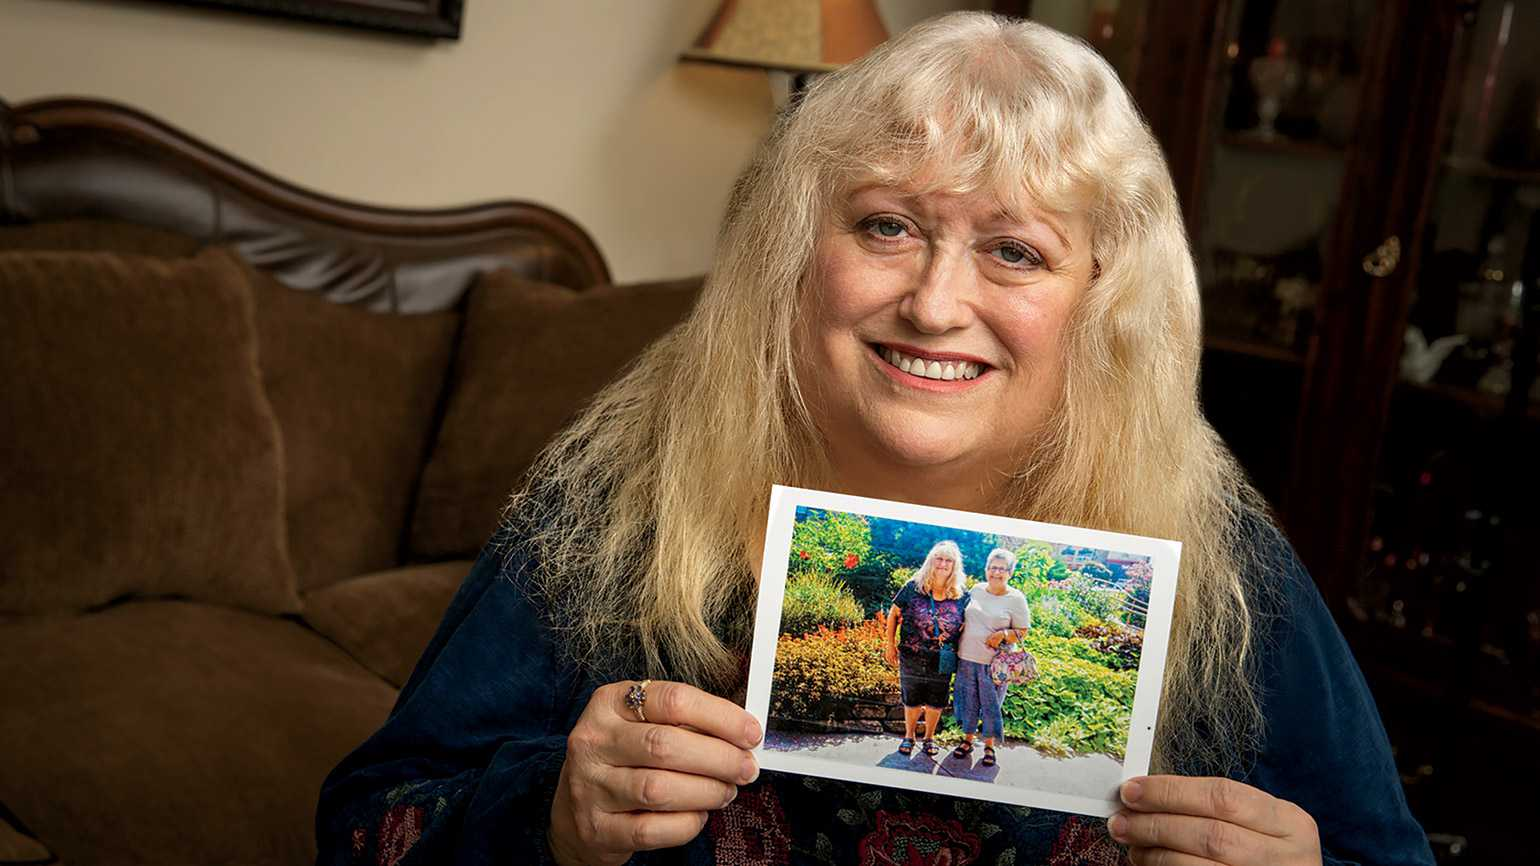 Kristy Dewberry holds a photo of herself and Carol; photo by Shevaun Williams